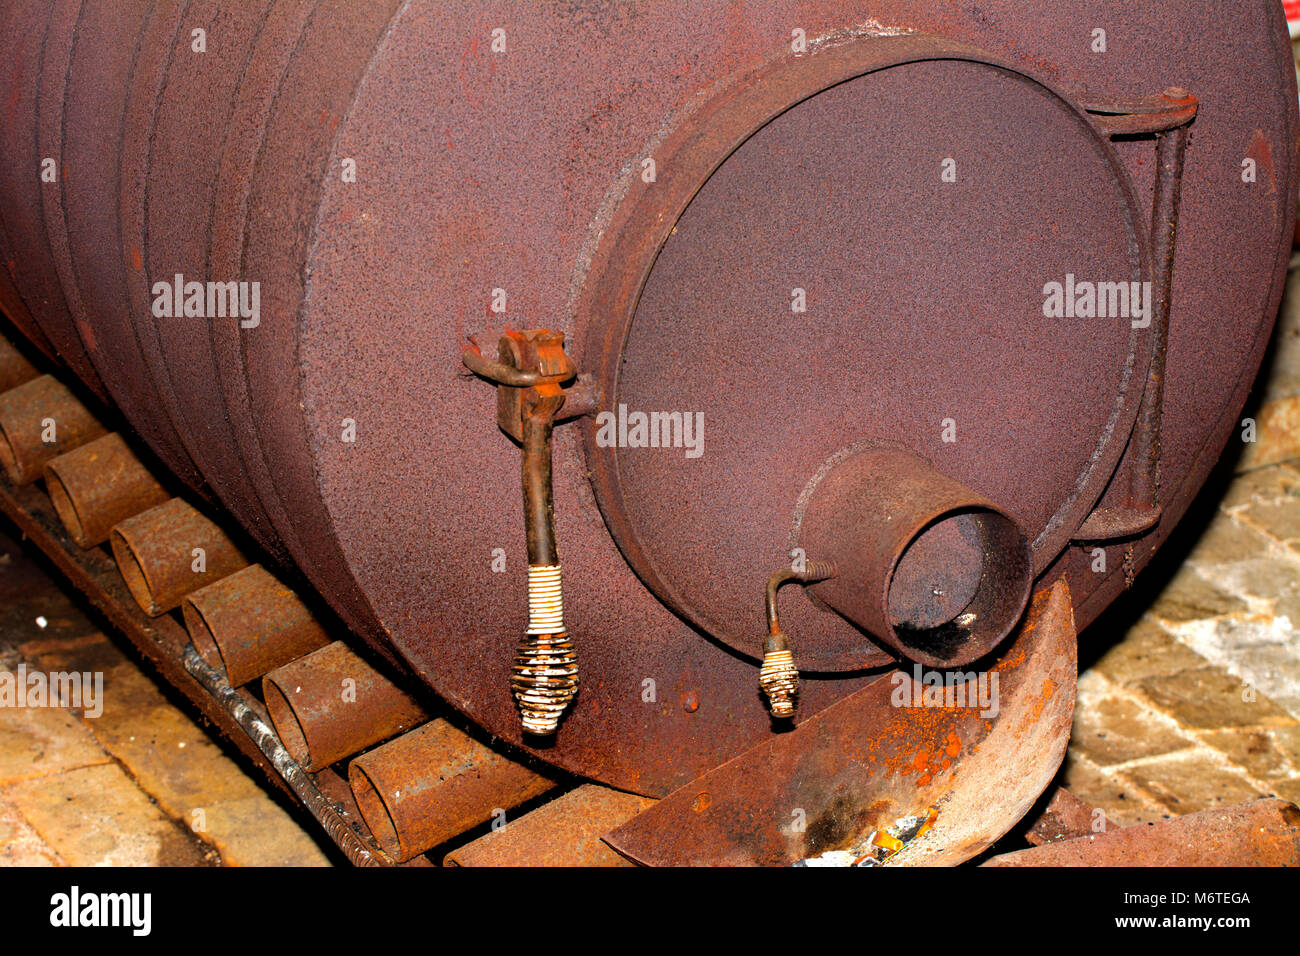 An old rusty stove for heating premises in winter in an abandoned and destroyed factory amidst chaos. Destruction - Stock Image